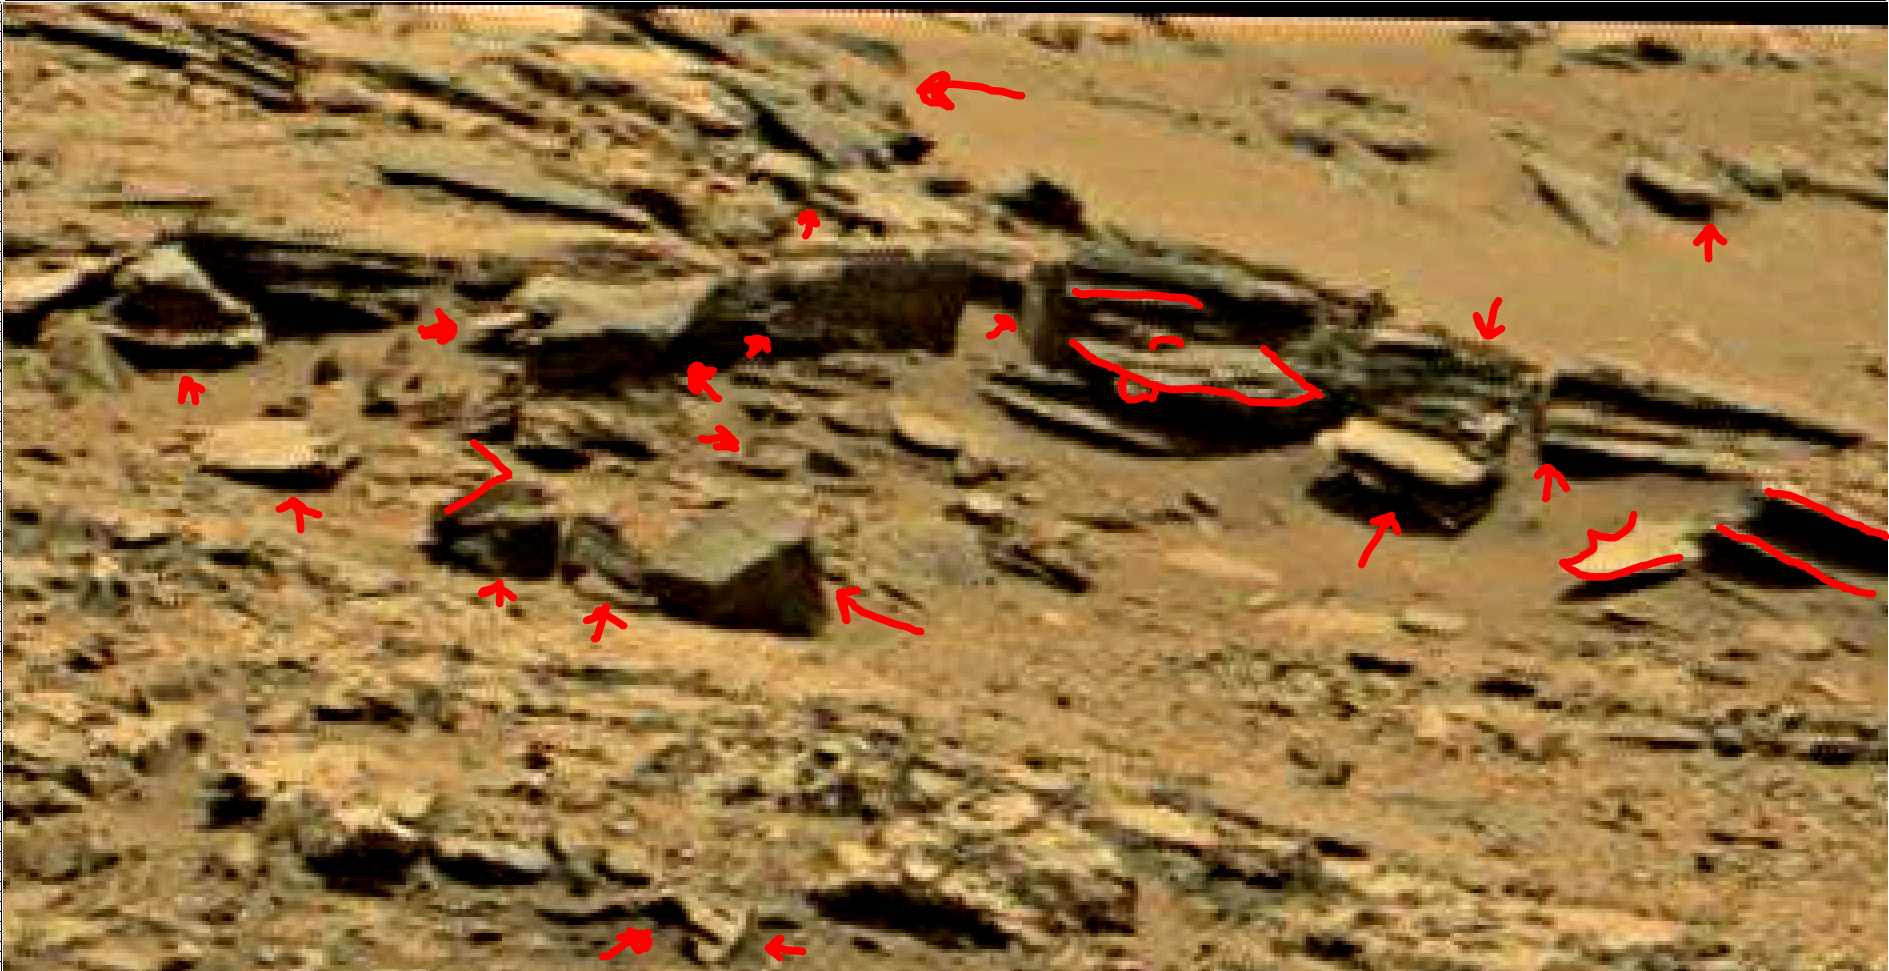 mars sol 1353 anomaly-artifacts 68a was life on mars